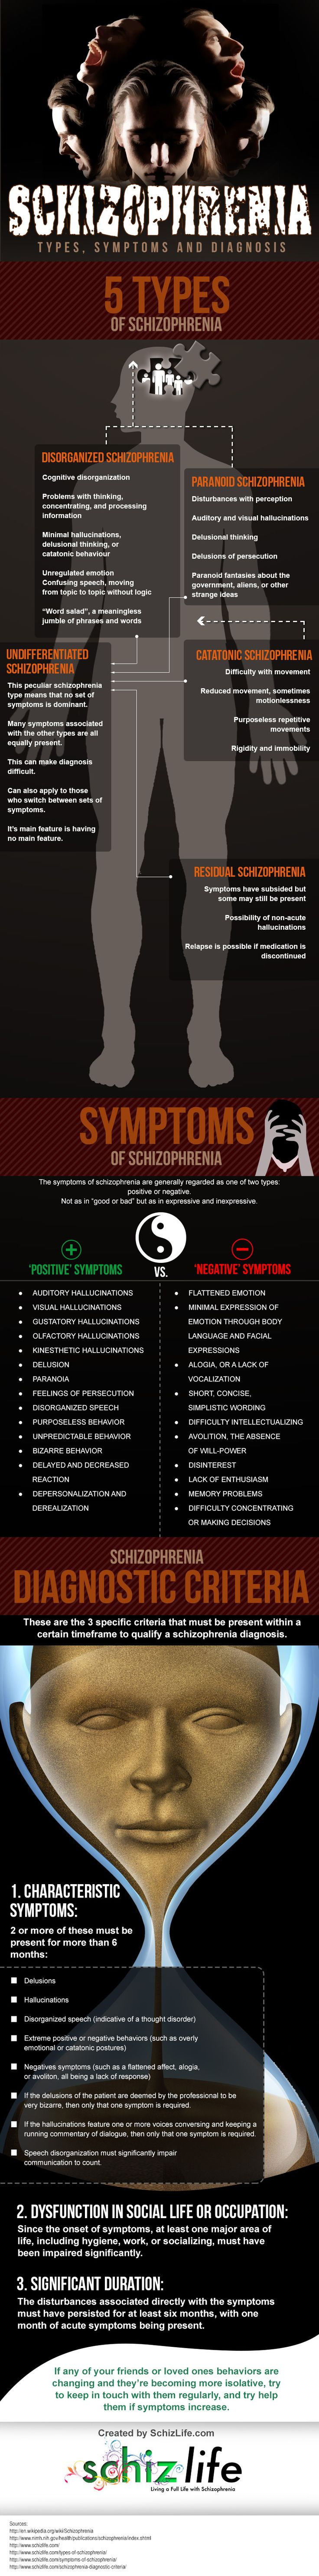 Schizophrenia Infographic: Types, Symptoms, and Diagnosis. From http://www.schizlife.com/schizophrenia-infographic-2/